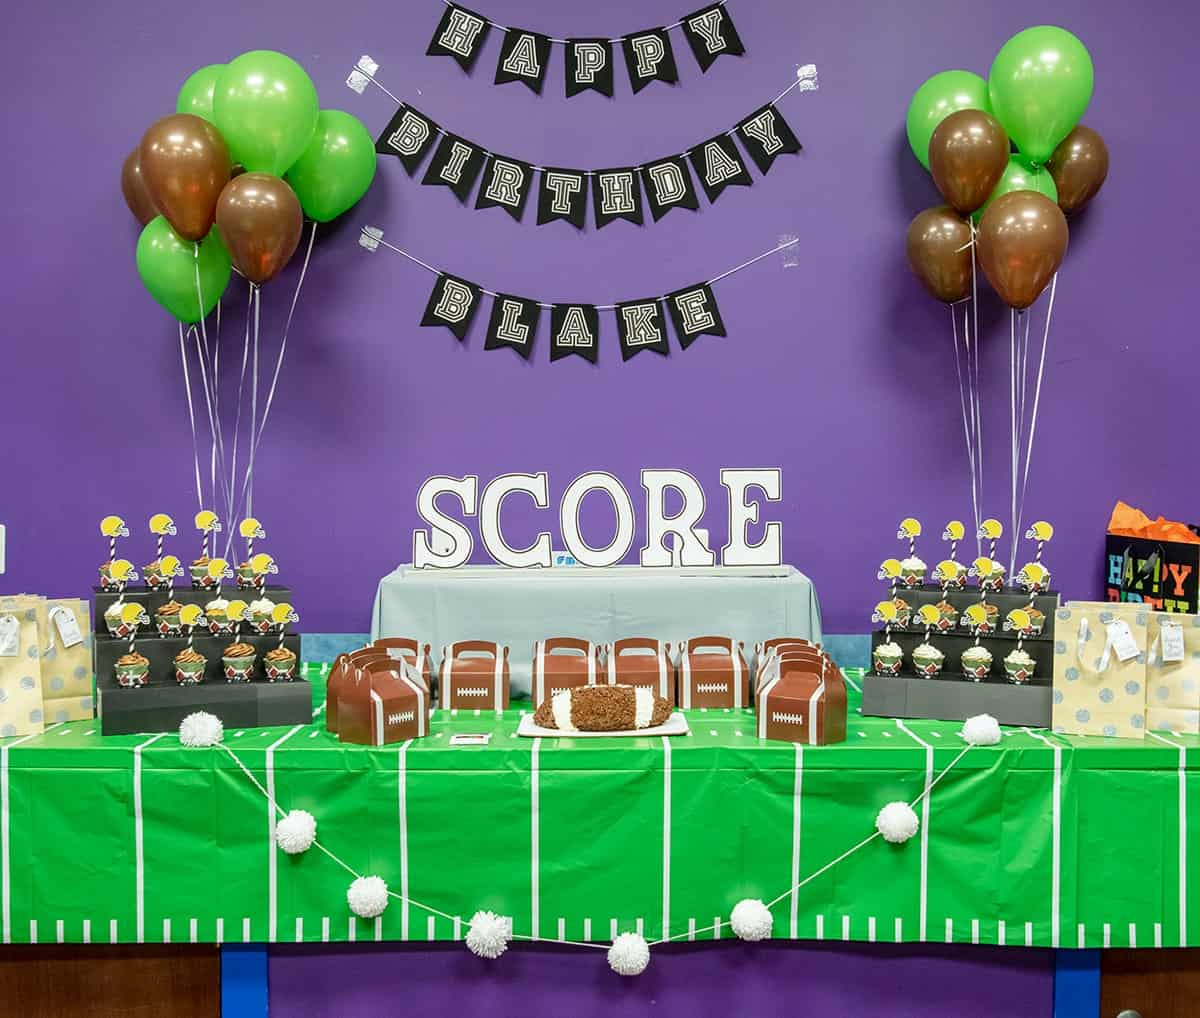 Football themed kid's birthday party table setup with accompanying football themed cakes and decorations.